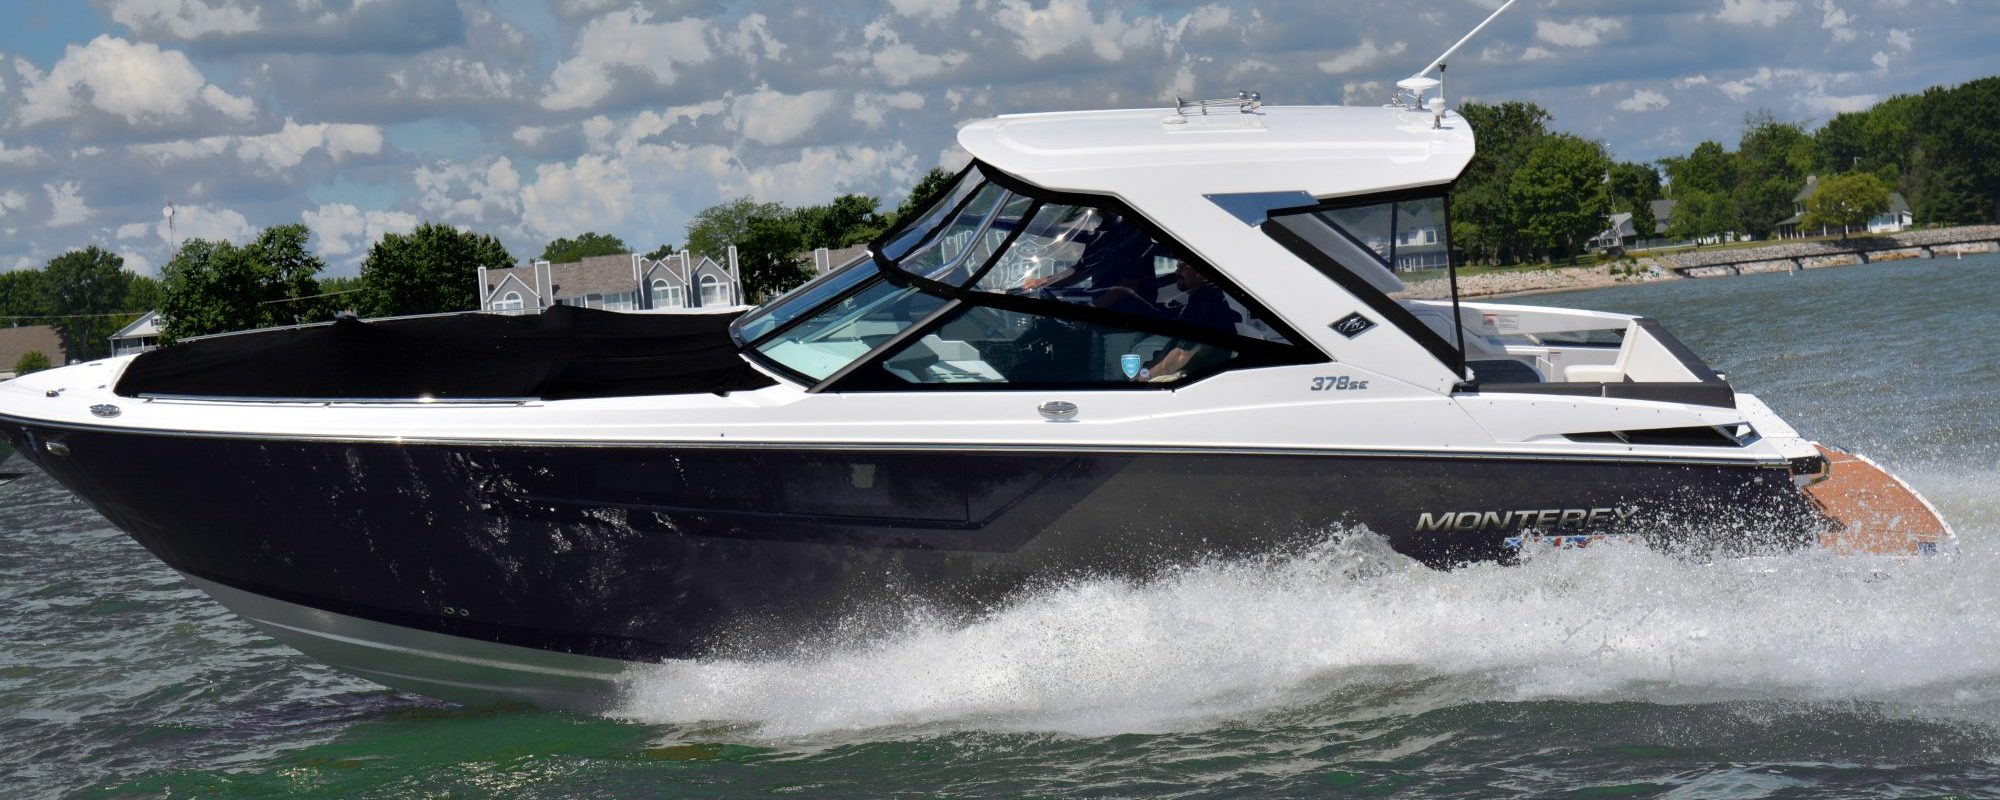 Boat Sales, Service, Brokerage & Storage In Ohio